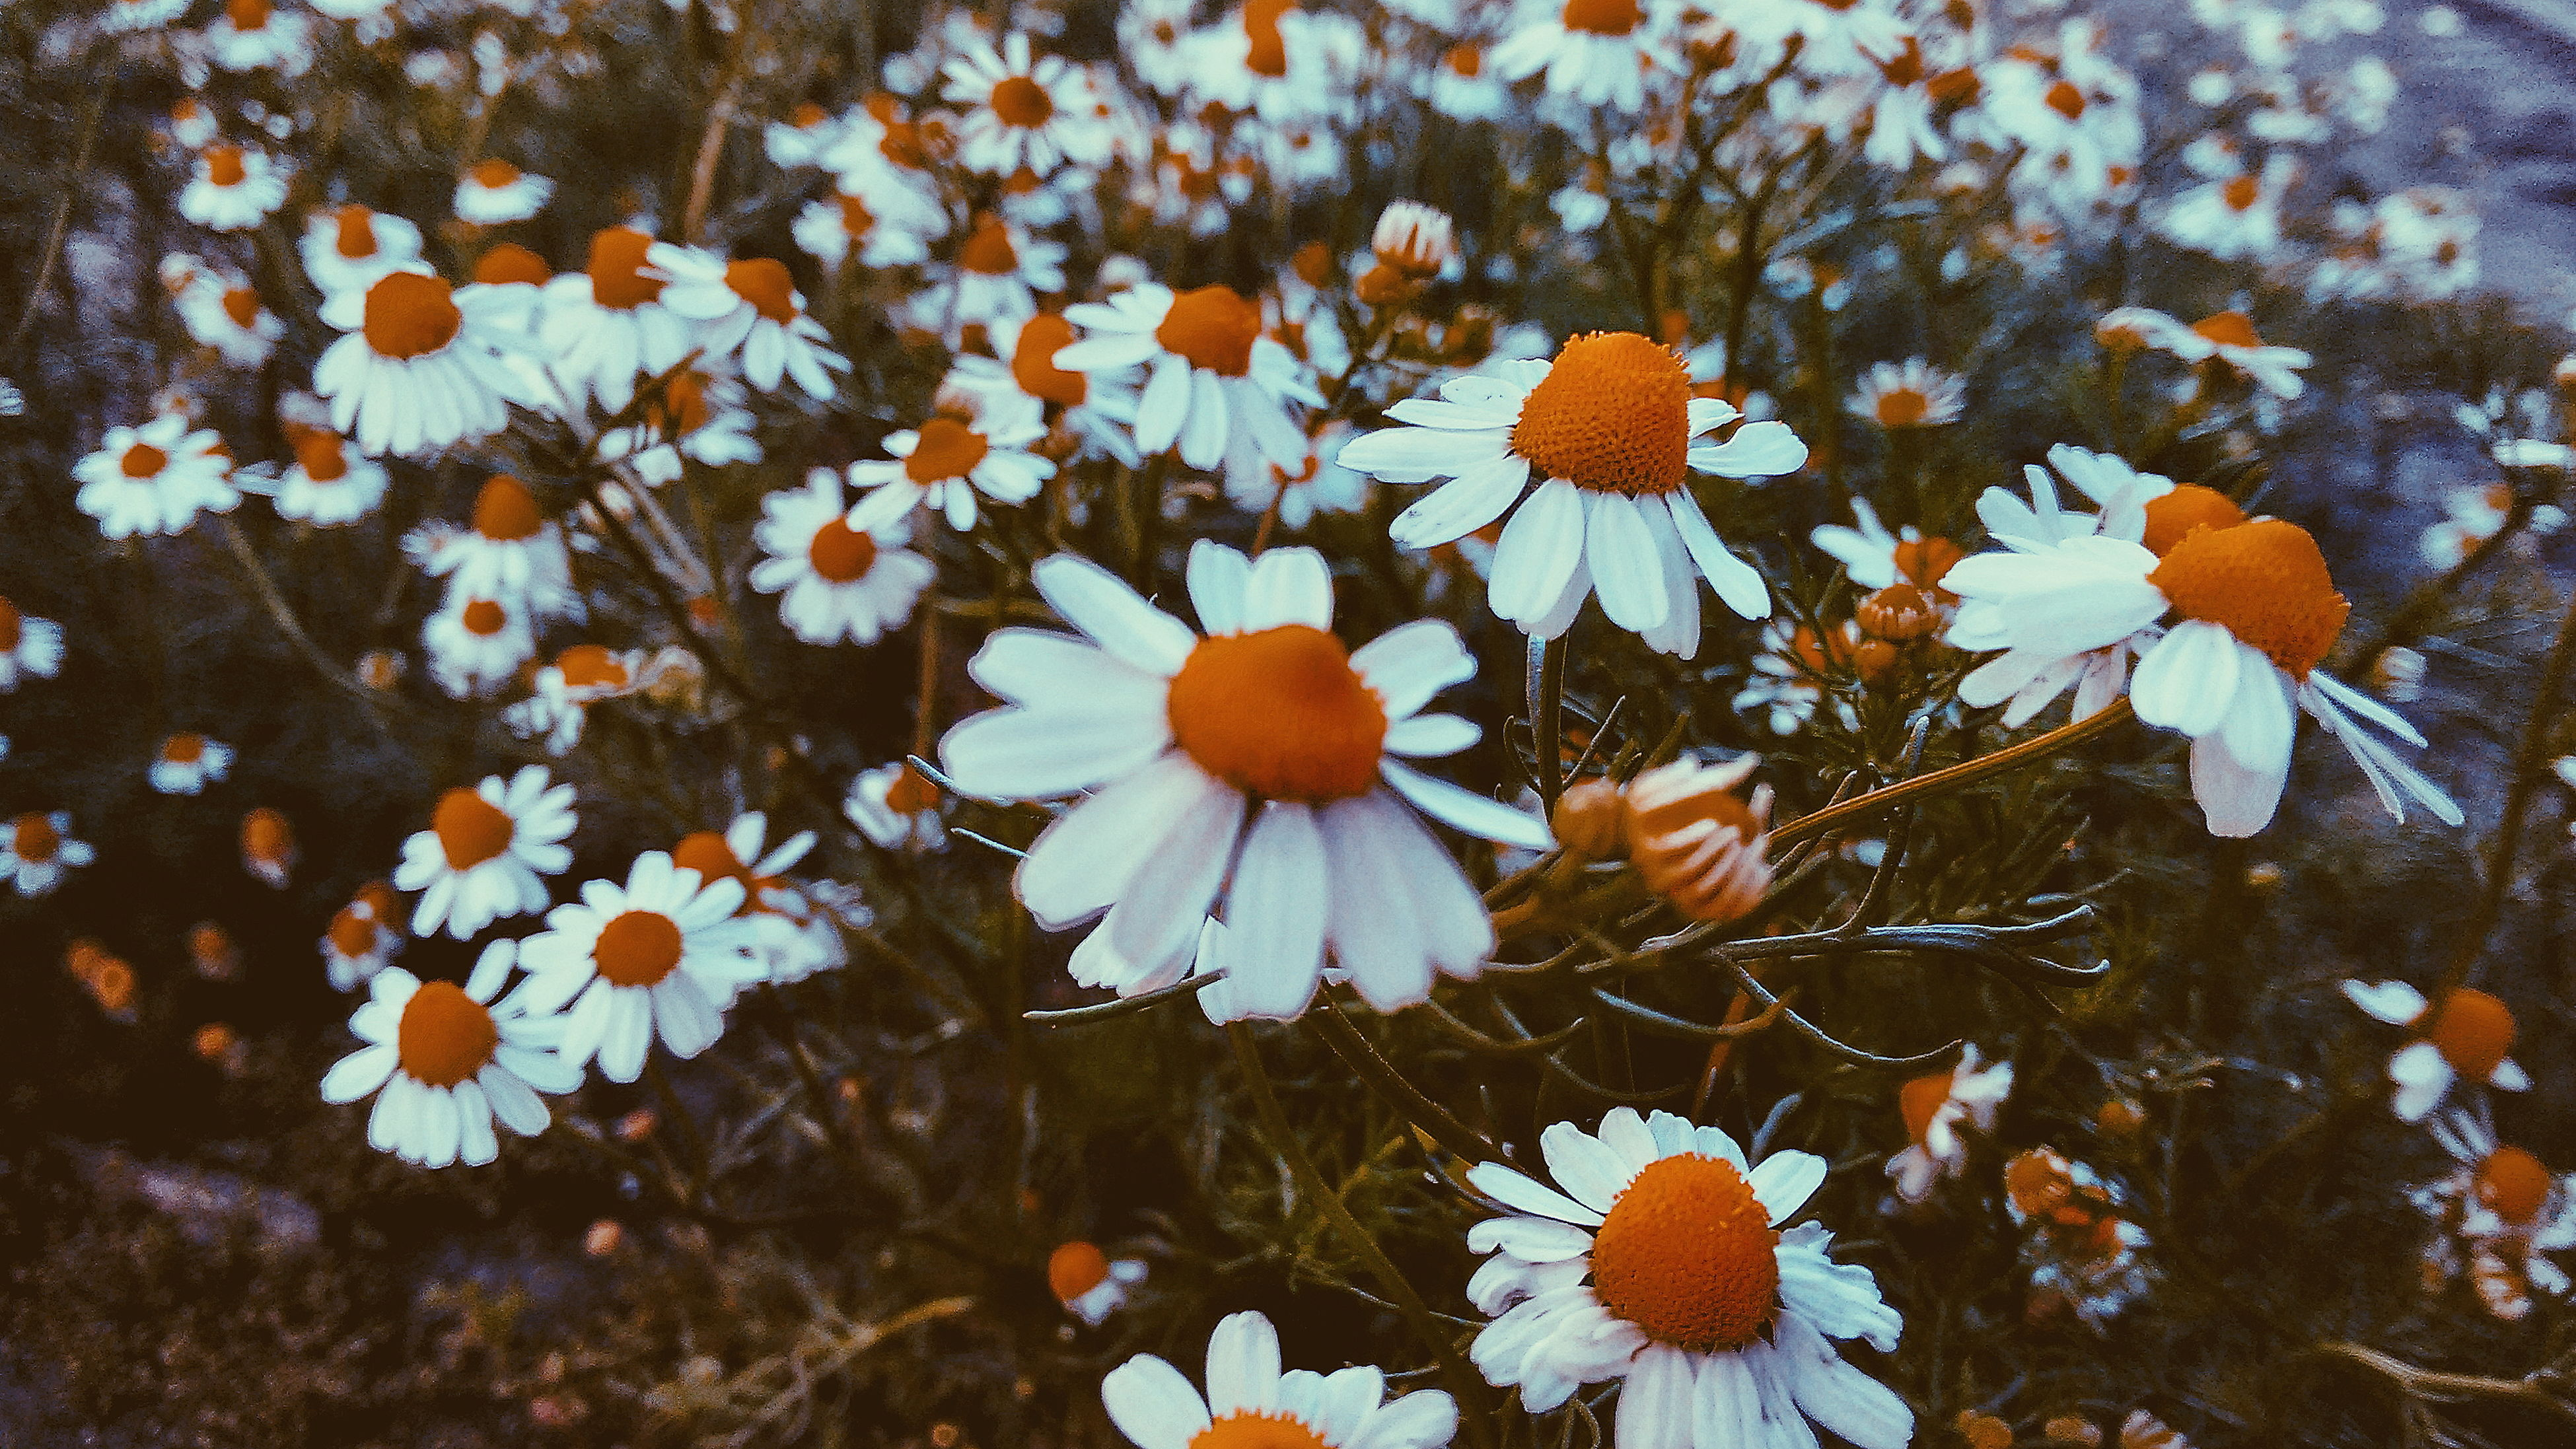 nature, flower, fragility, no people, beauty in nature, growth, outdoors, day, flower head, freshness, close-up